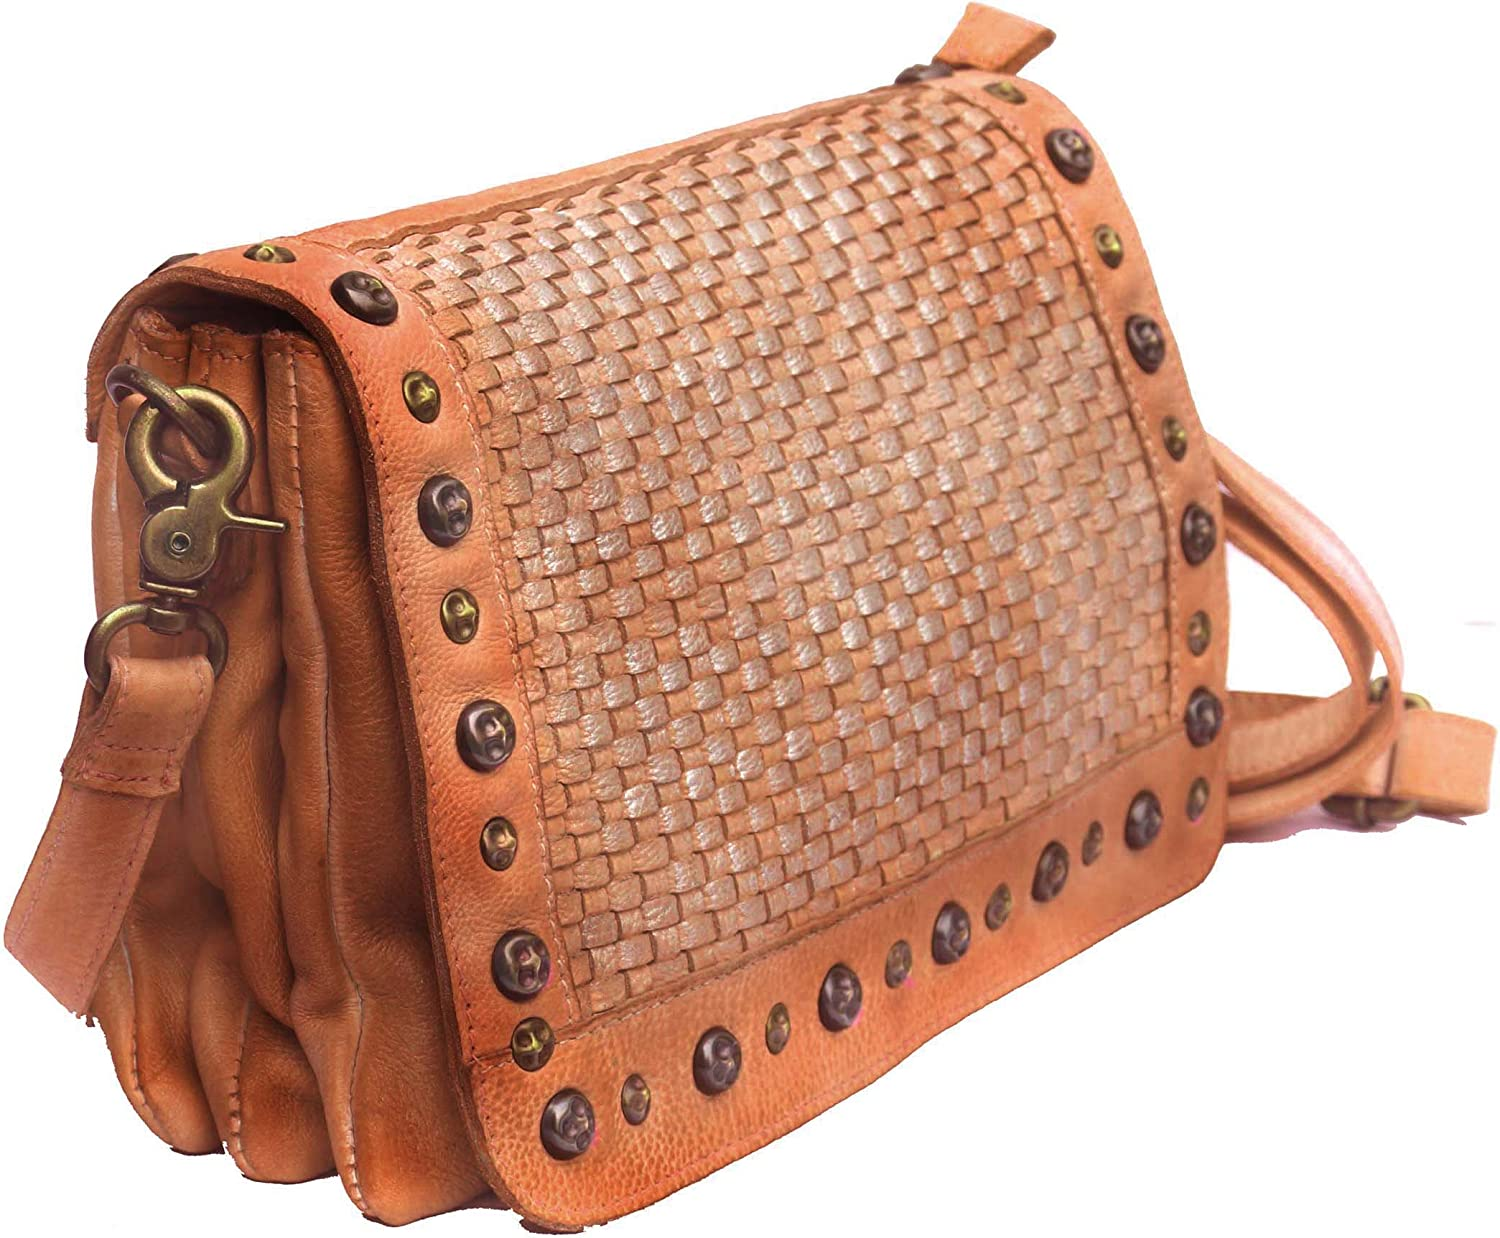 Vannamoda Women's Crossbody Leather HandWeave Bag